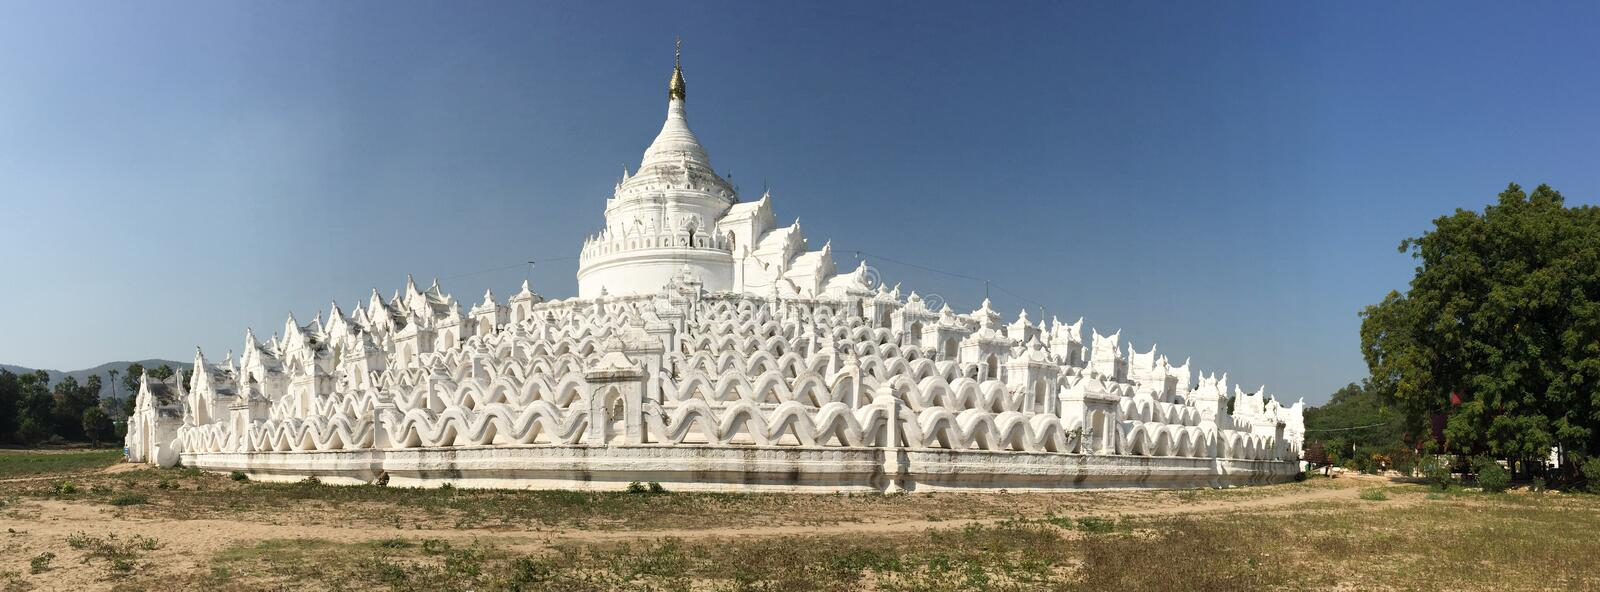 Mya Thein Dan Pagoda in Mingun, Myanmar stock photography